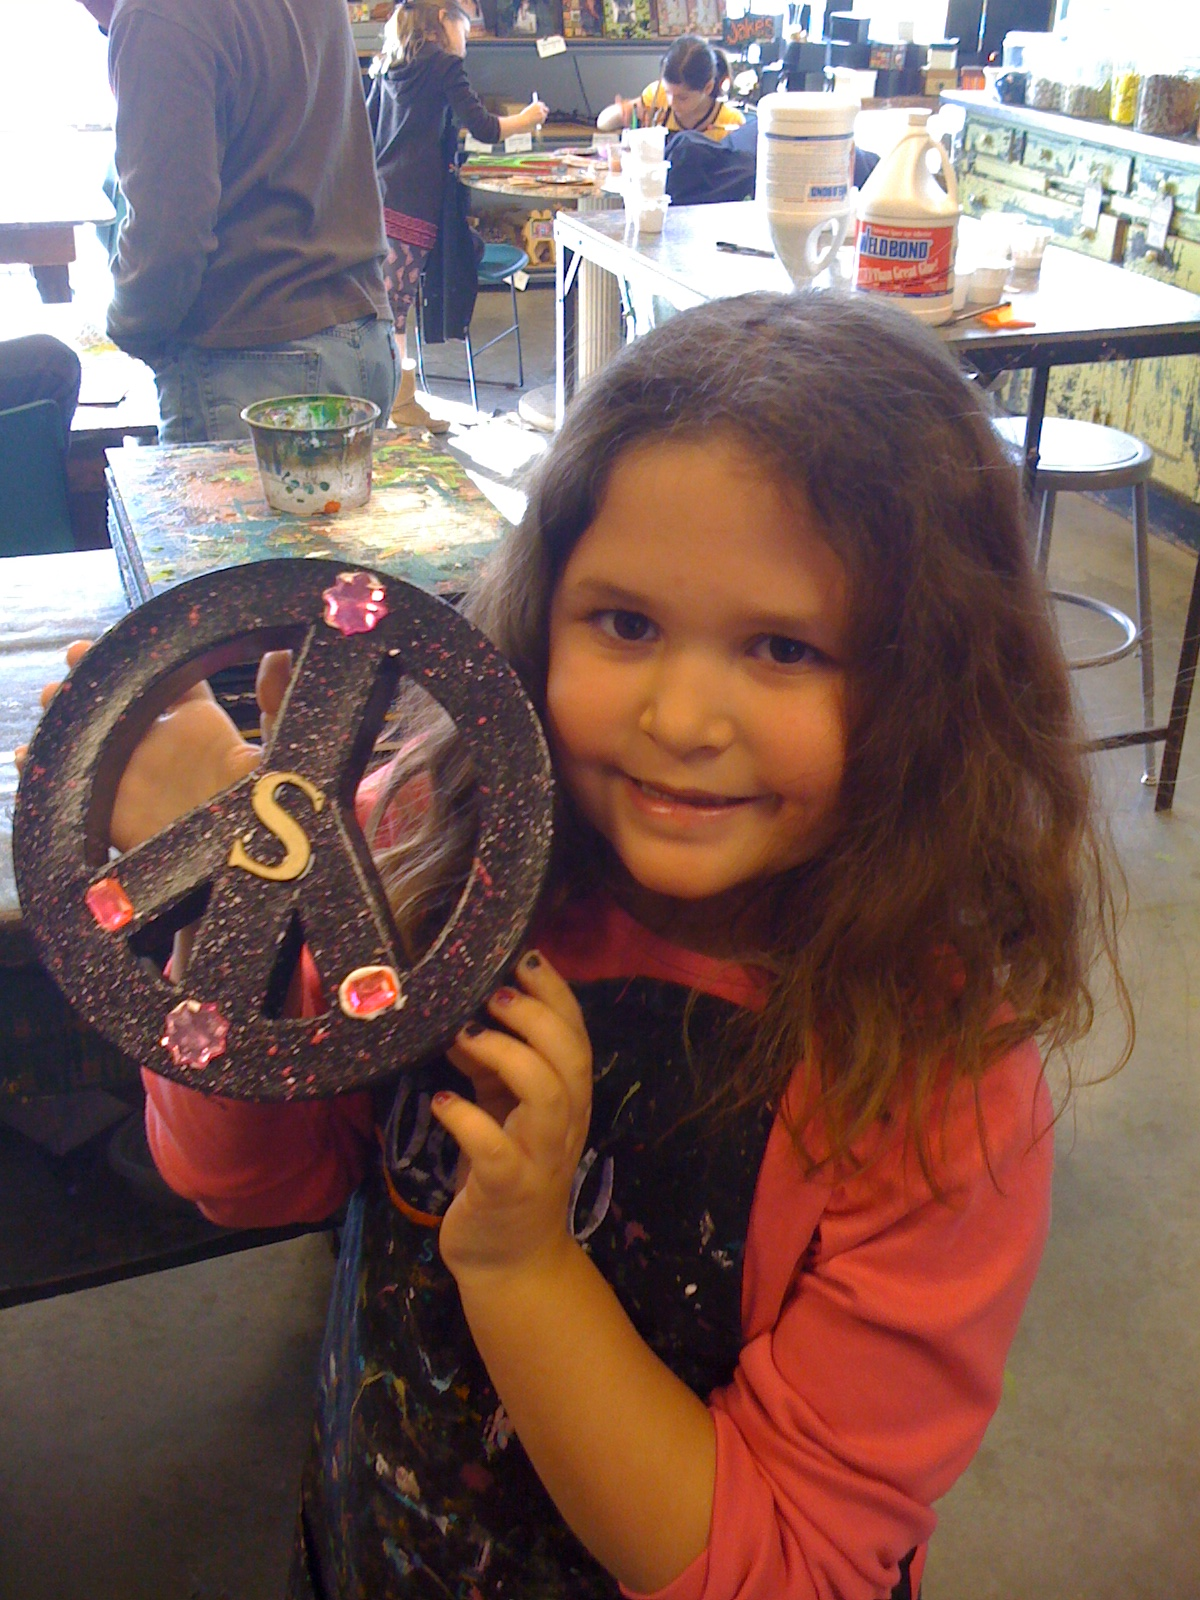 girl-indoor fun-craft-art-project